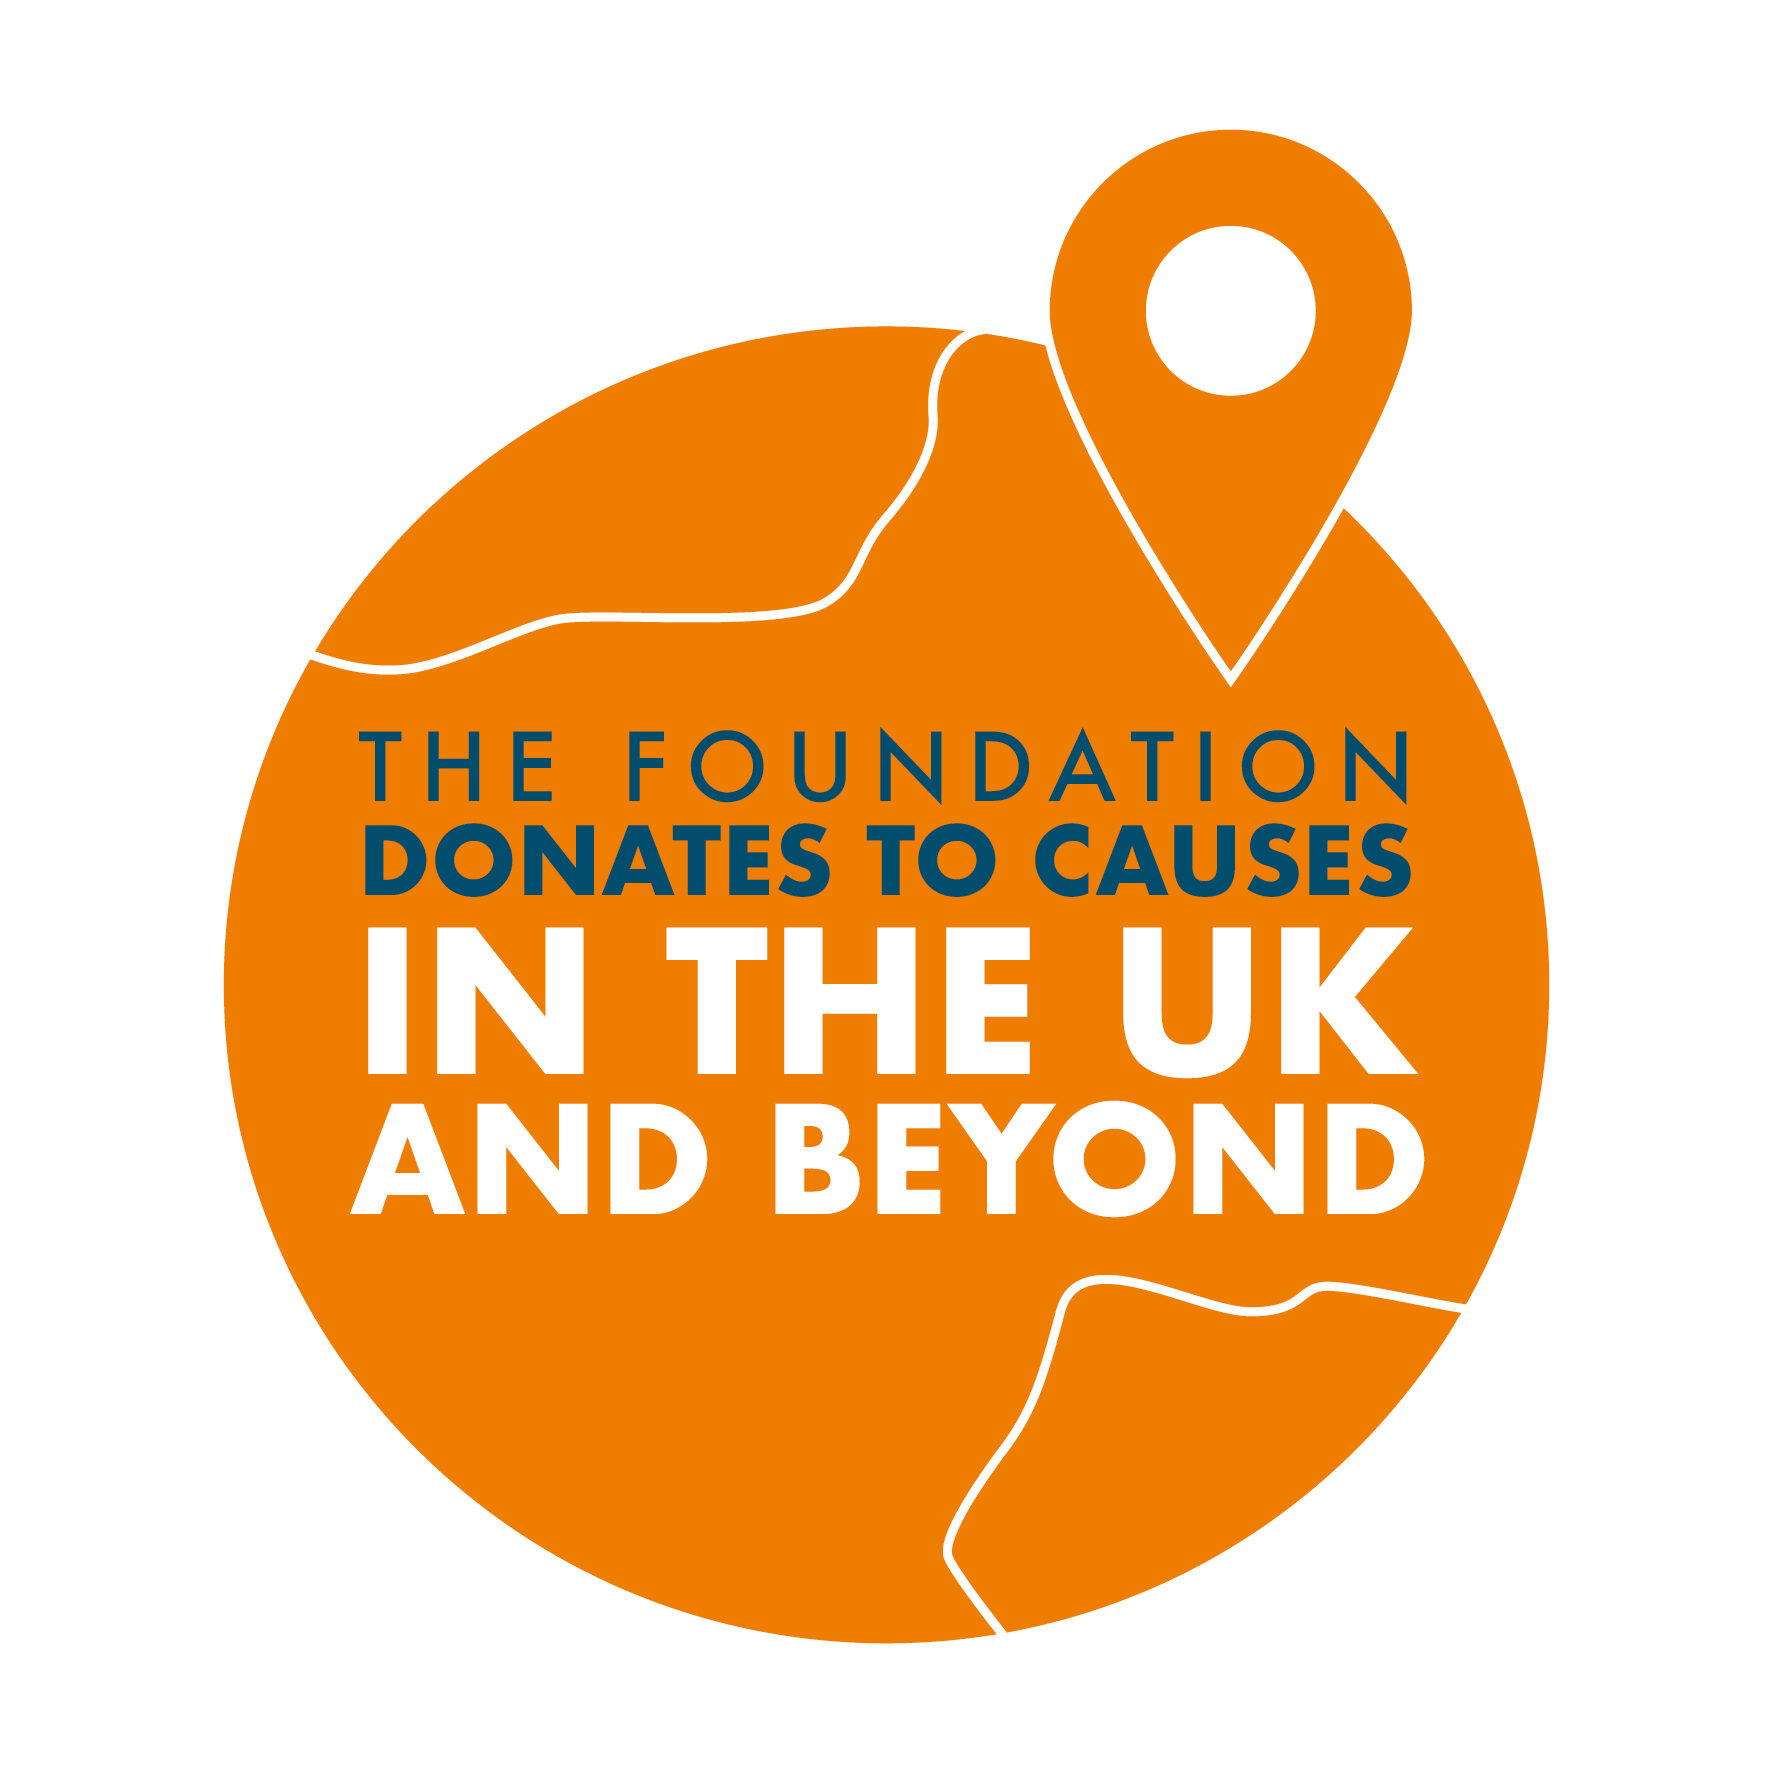 The Foundation Donates to Causes in the UK and Beyond